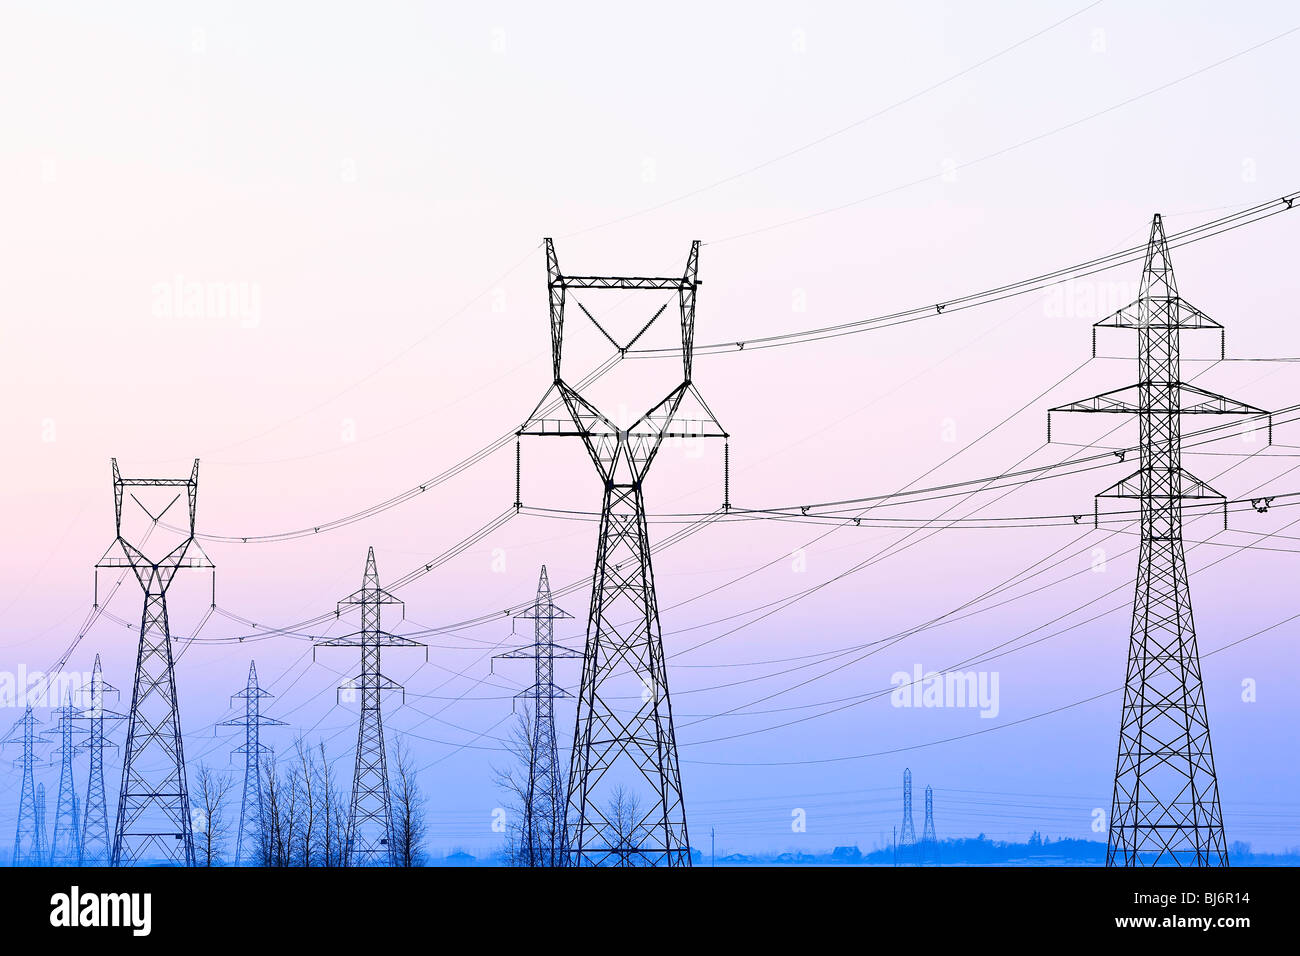 Power transmission lines and towers at dusk, near Winnipeg, Manitoba, Canada. - Stock Image